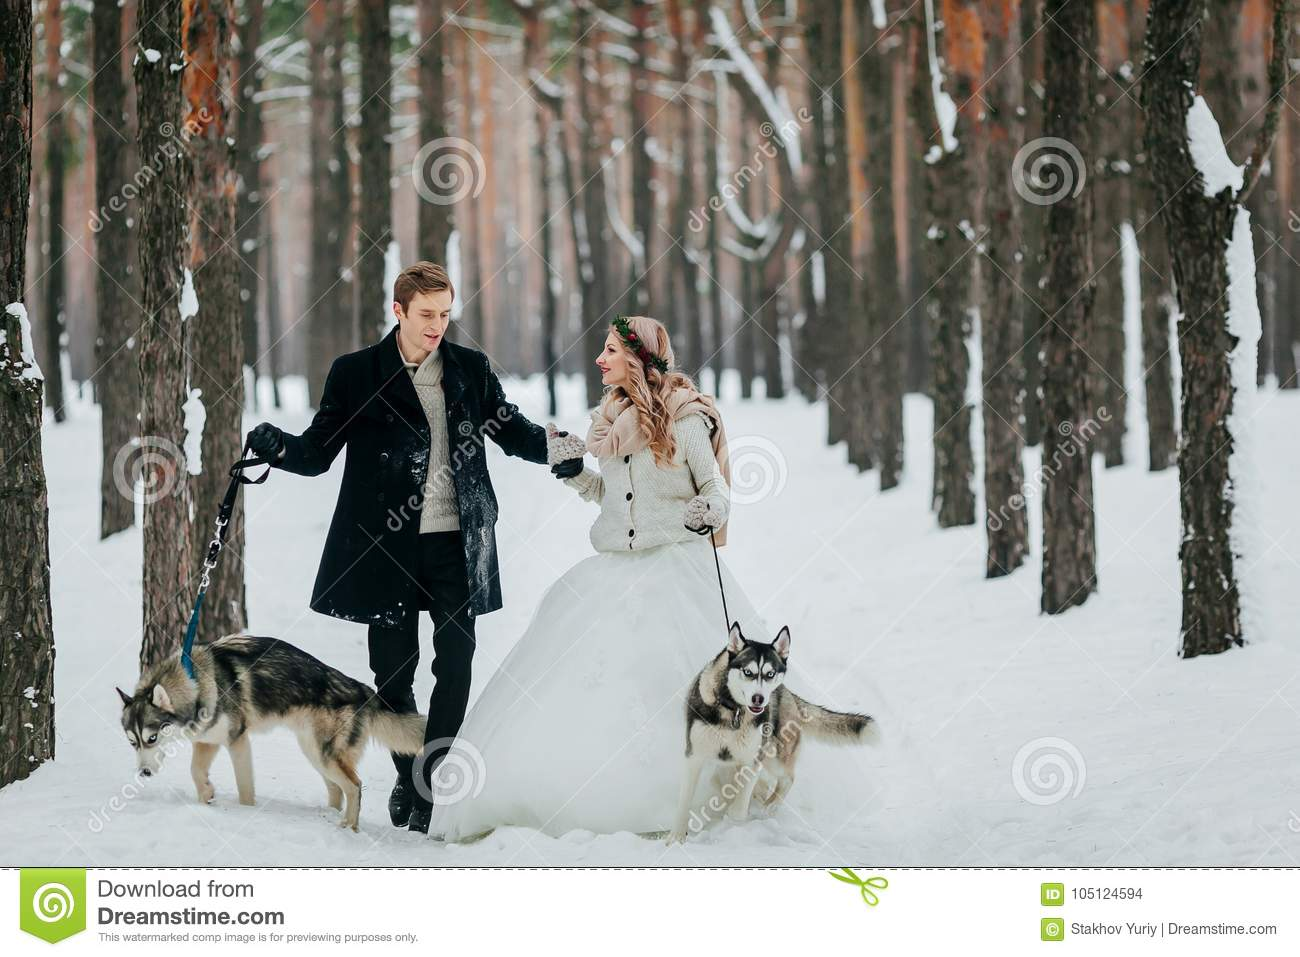 Cute couple walks on the trail in the snowy forest with two siberian dogs. Winter wedding. Artwork